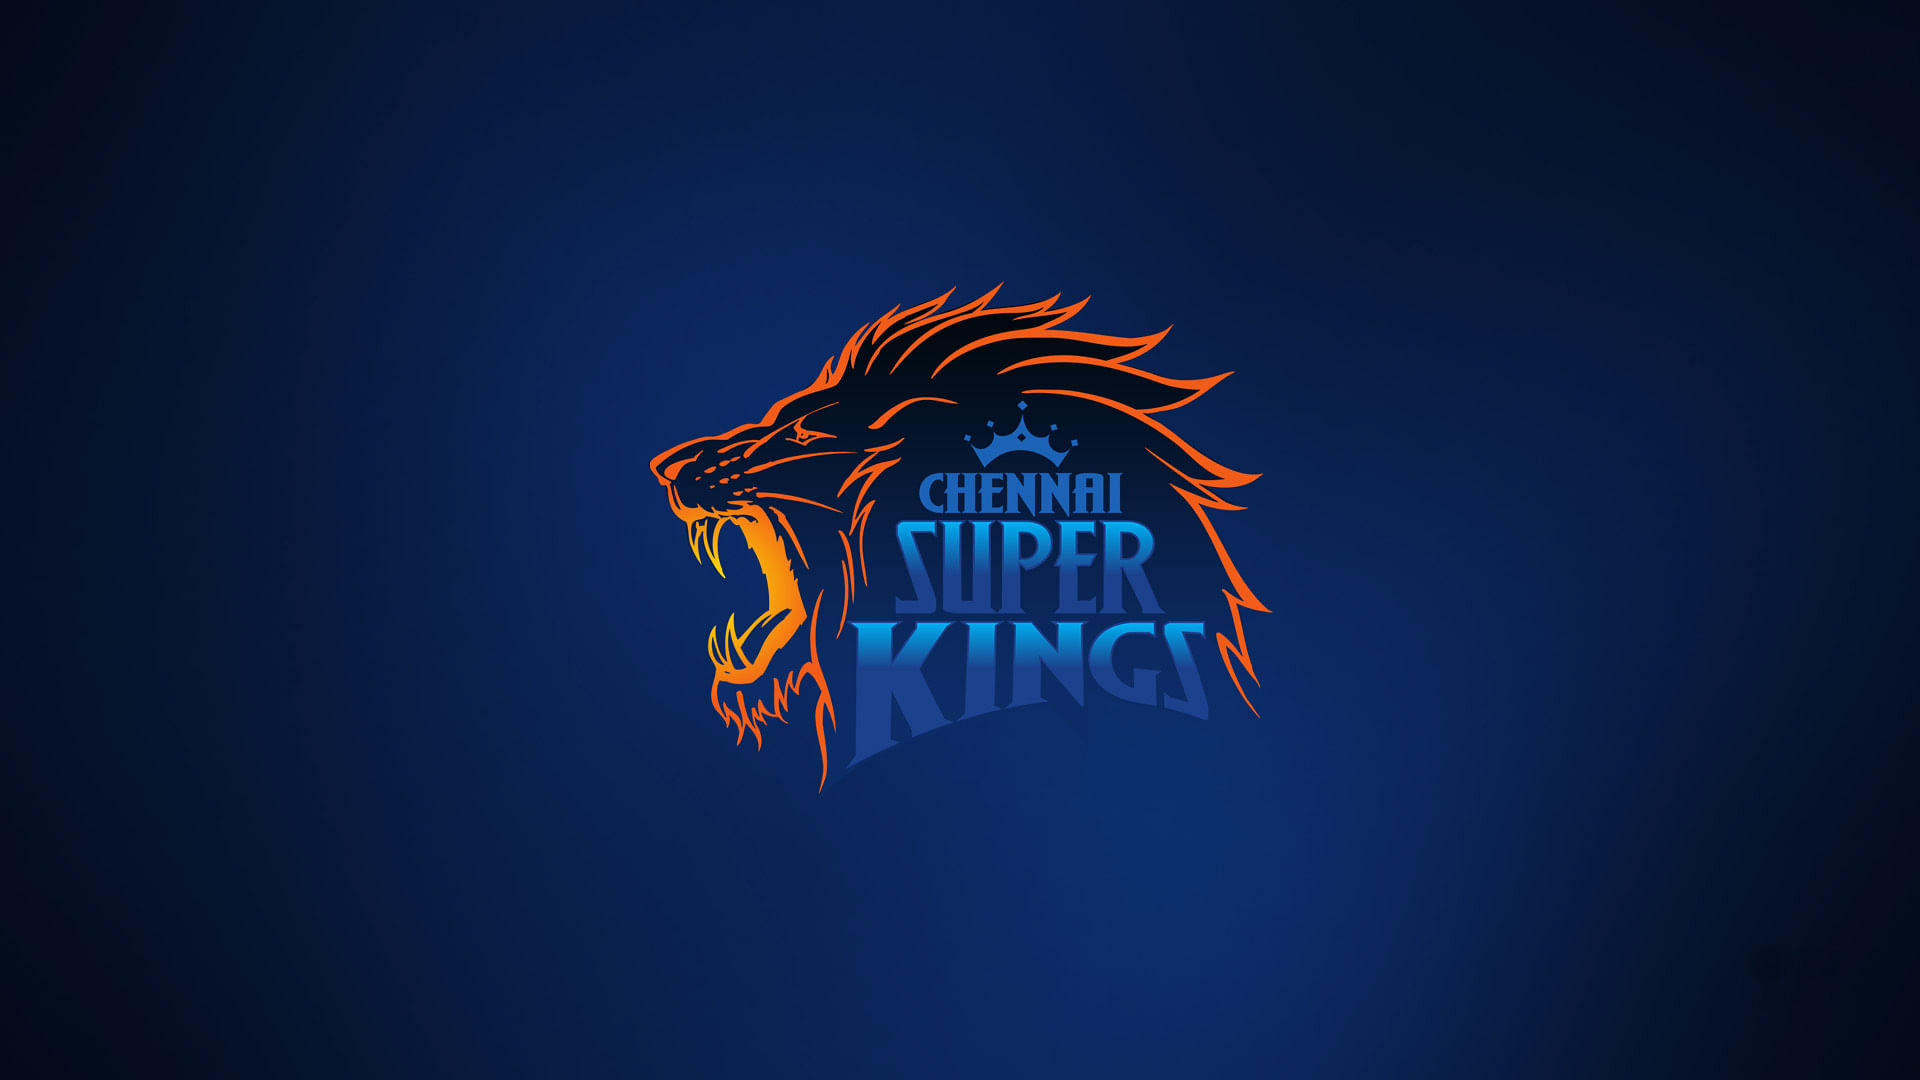 Which IPL team's logo is the best?